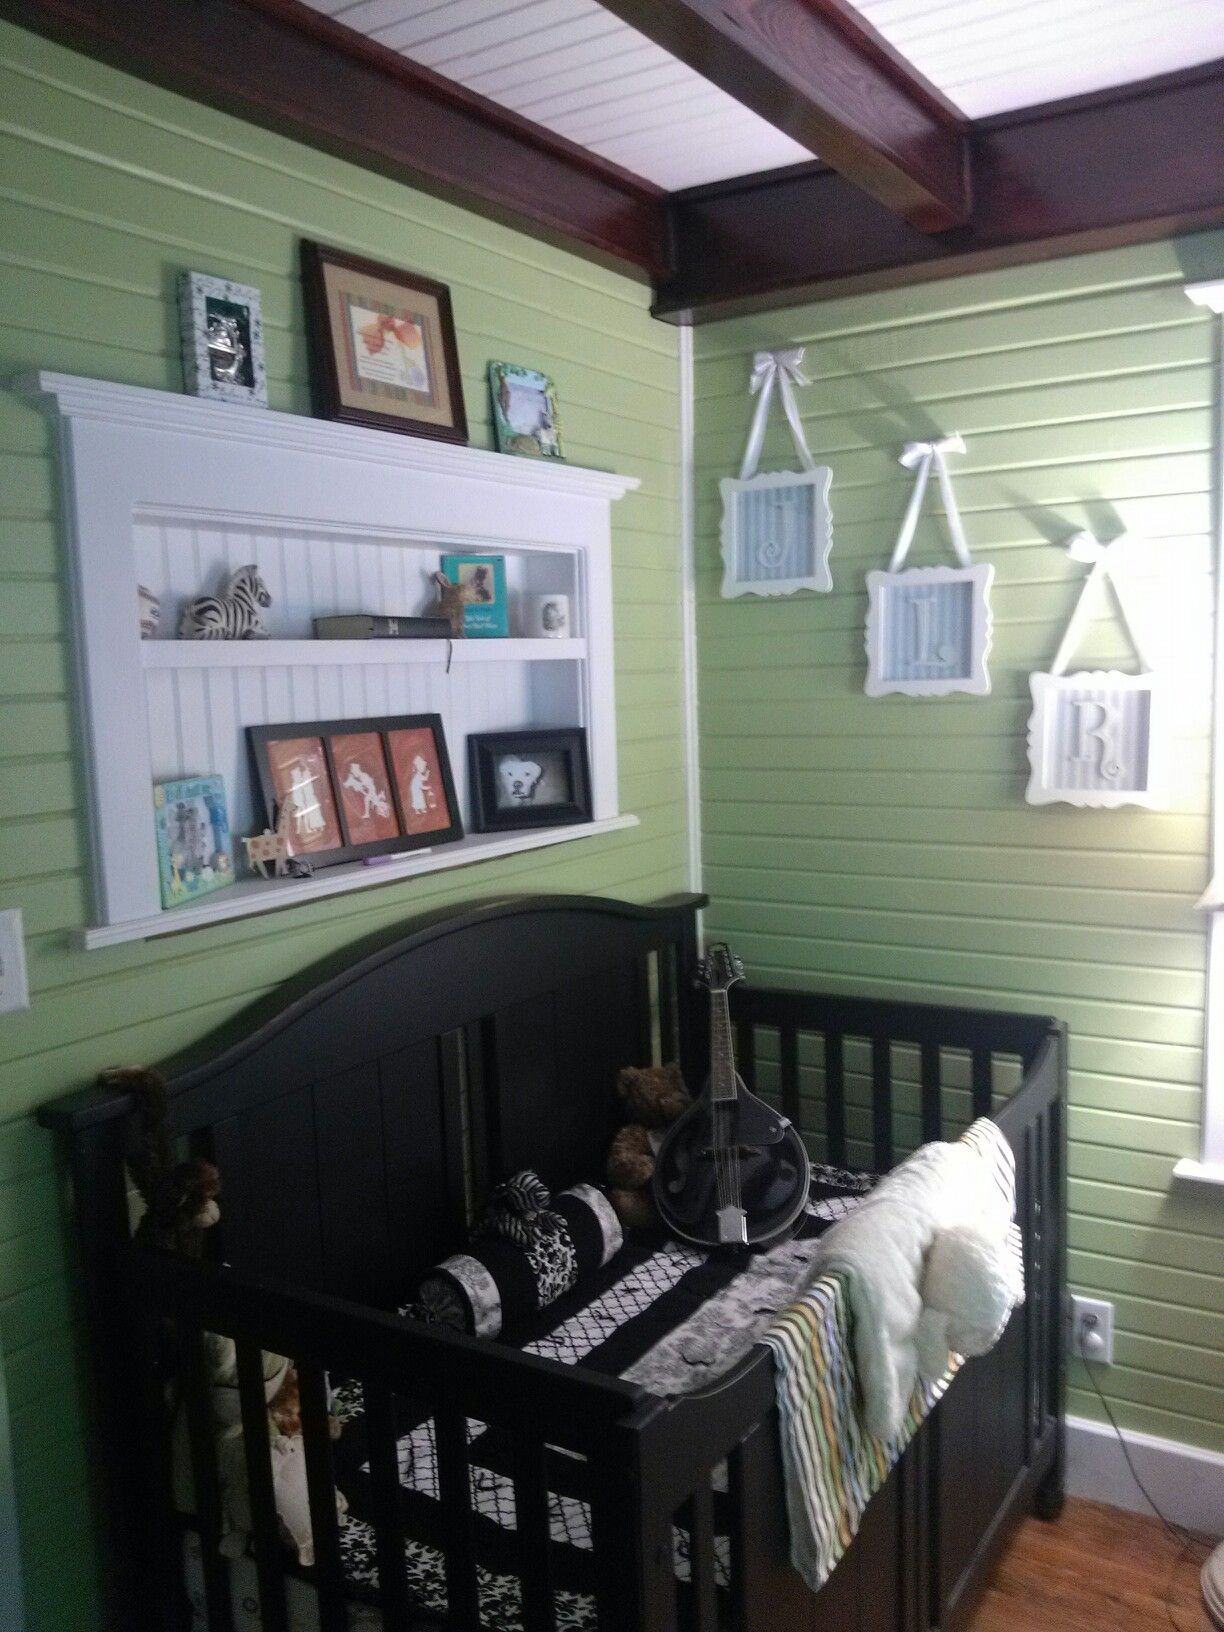 Remodeled baby room. Raised the ceiling, and added beams. Shelves inserted into the walls are a great idea for small spaces. Love the color we picked too:)